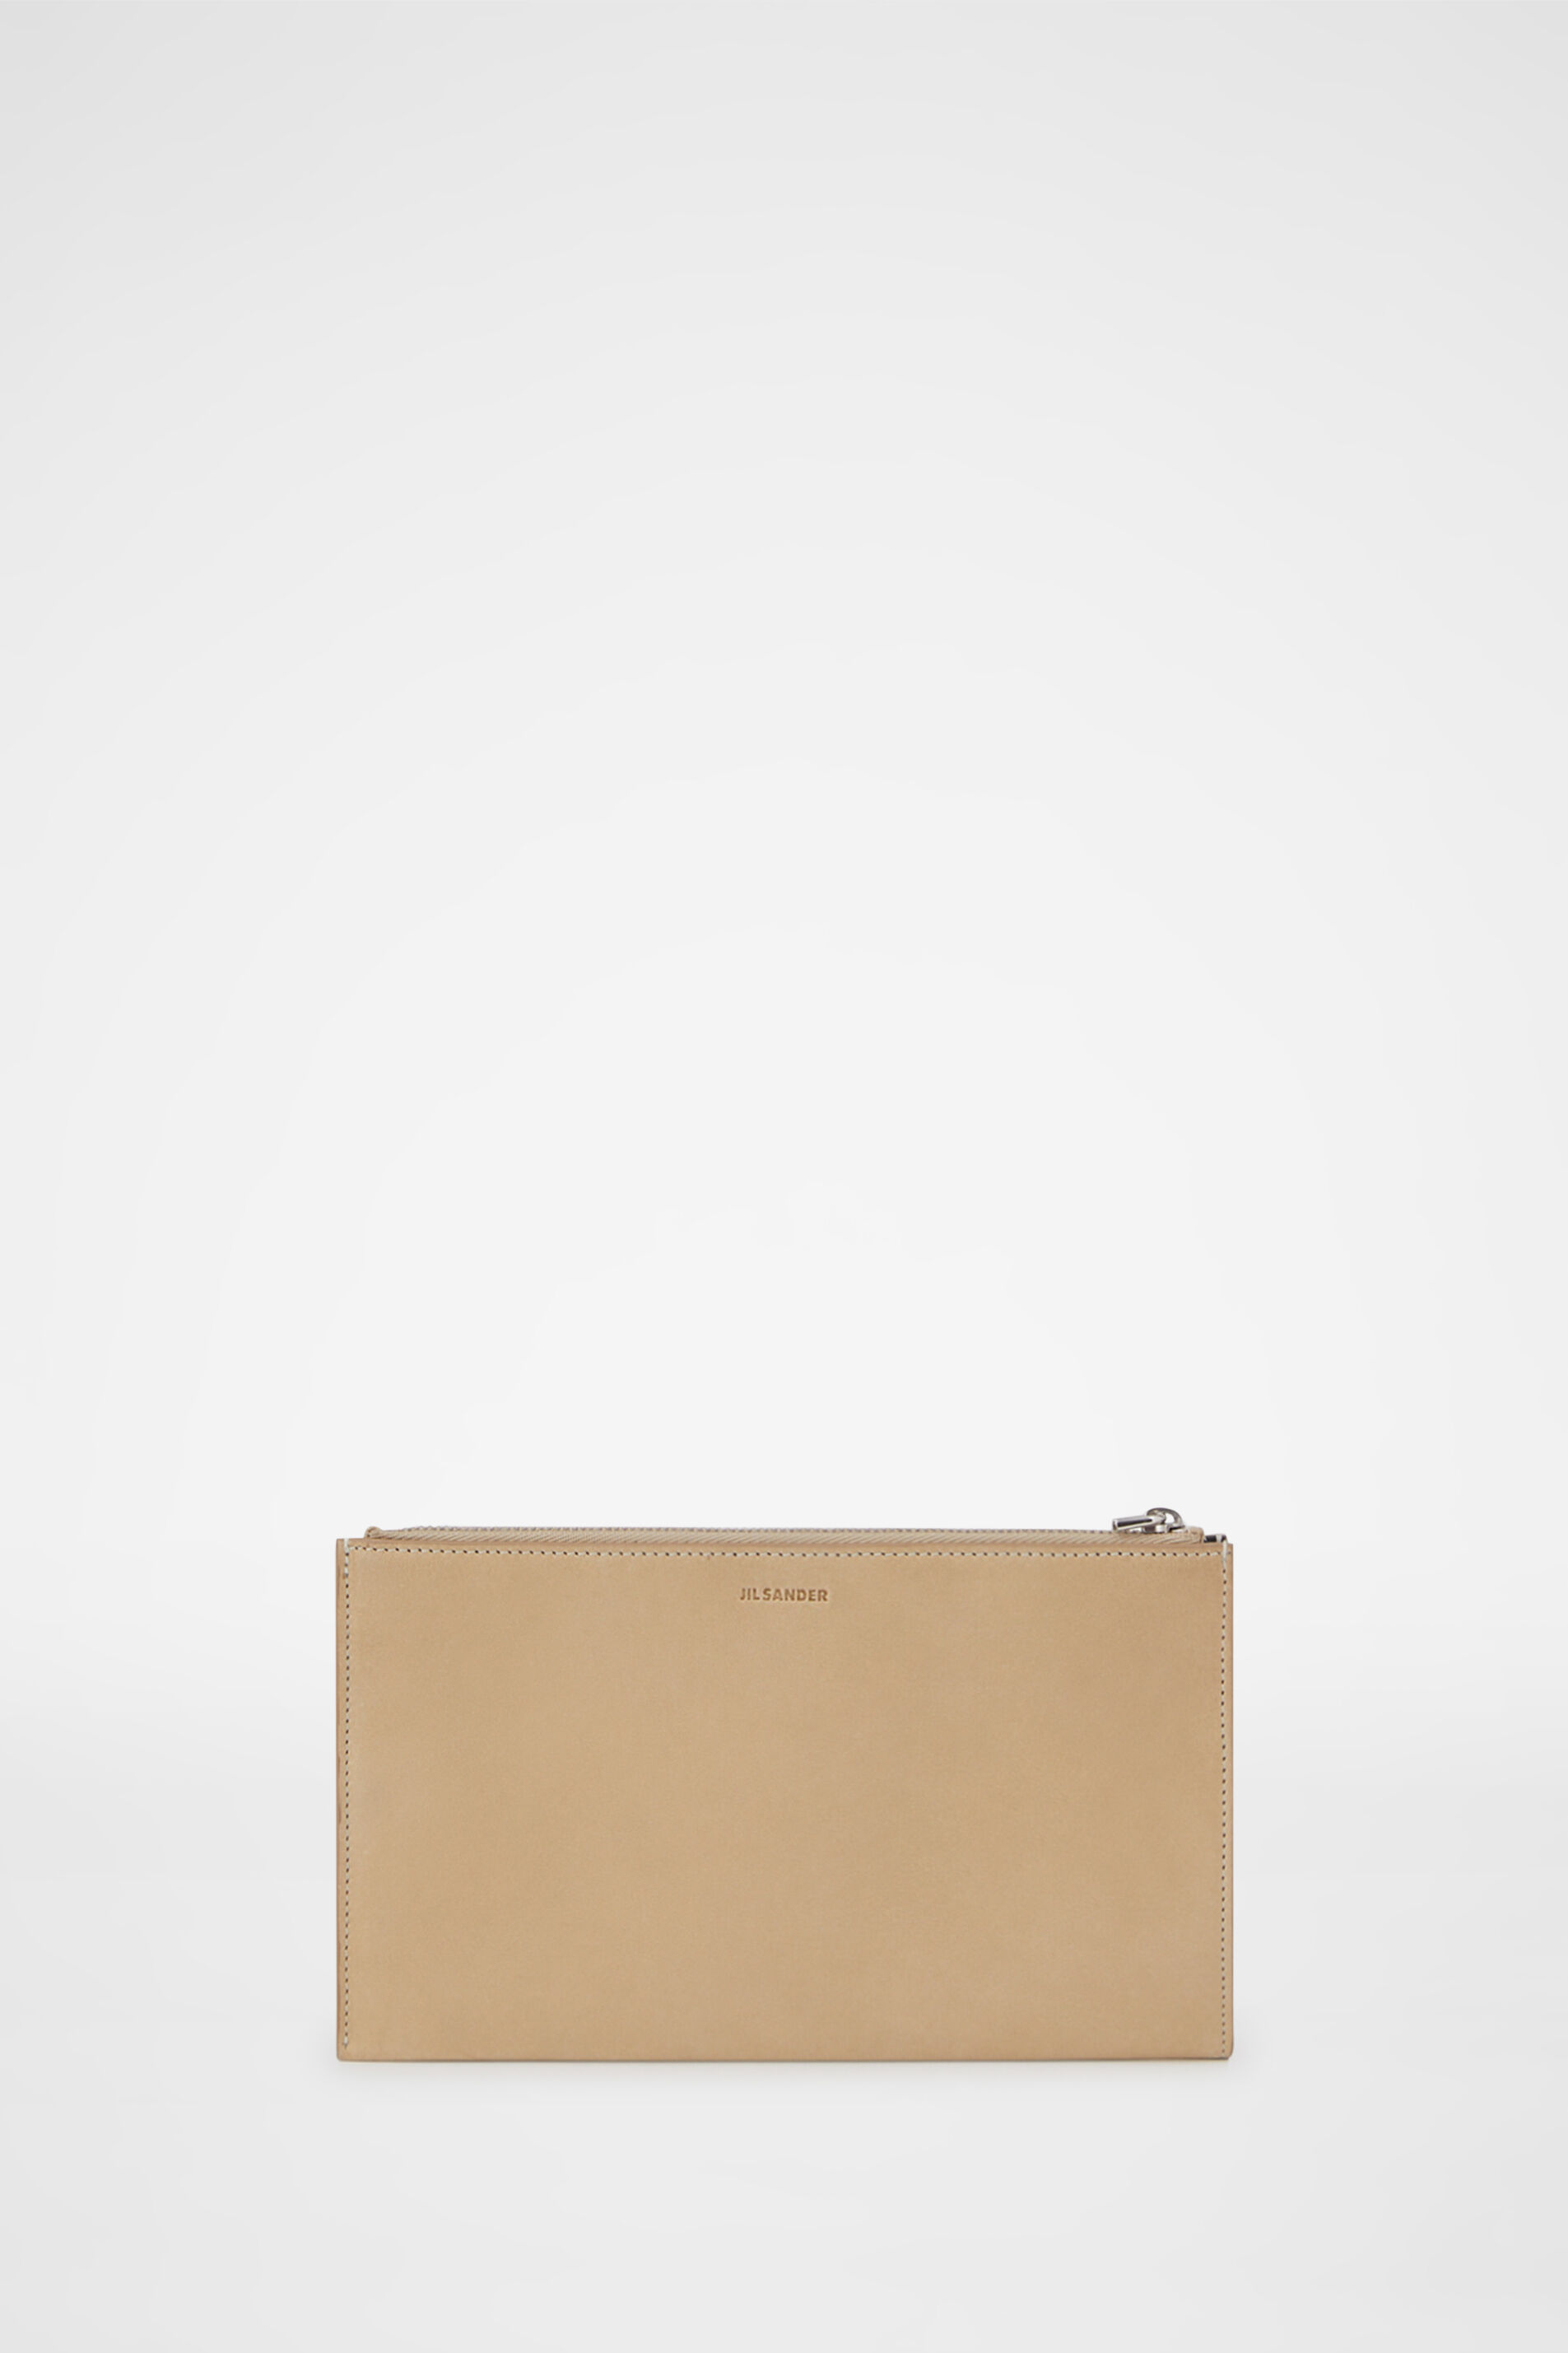 Zip Document Holder, dark beige, large